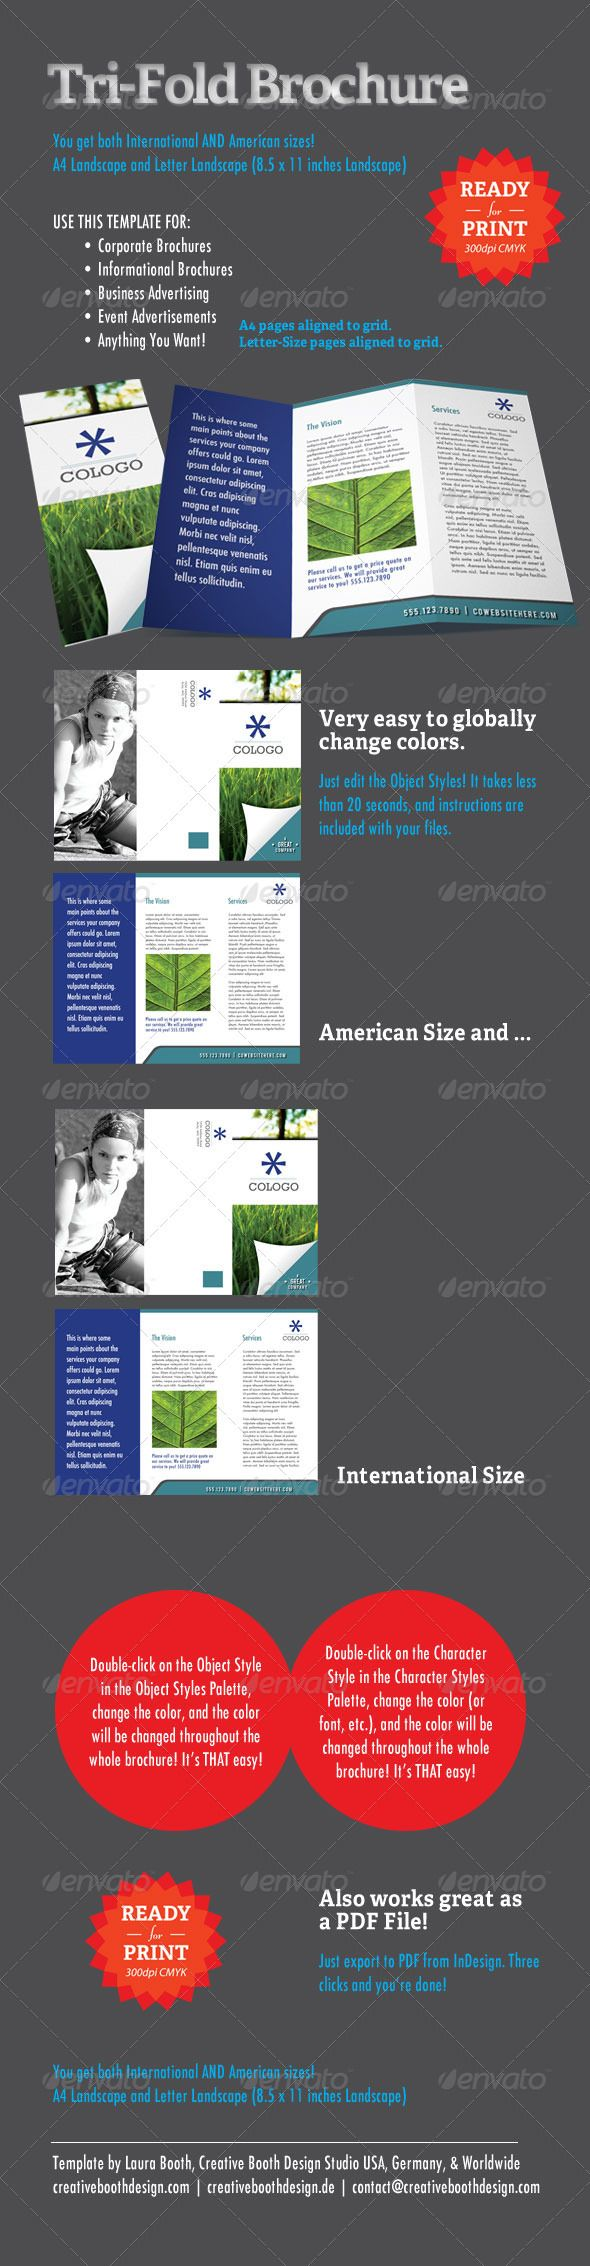 Apartment Complex Brochures  Google Search  Graphic Design